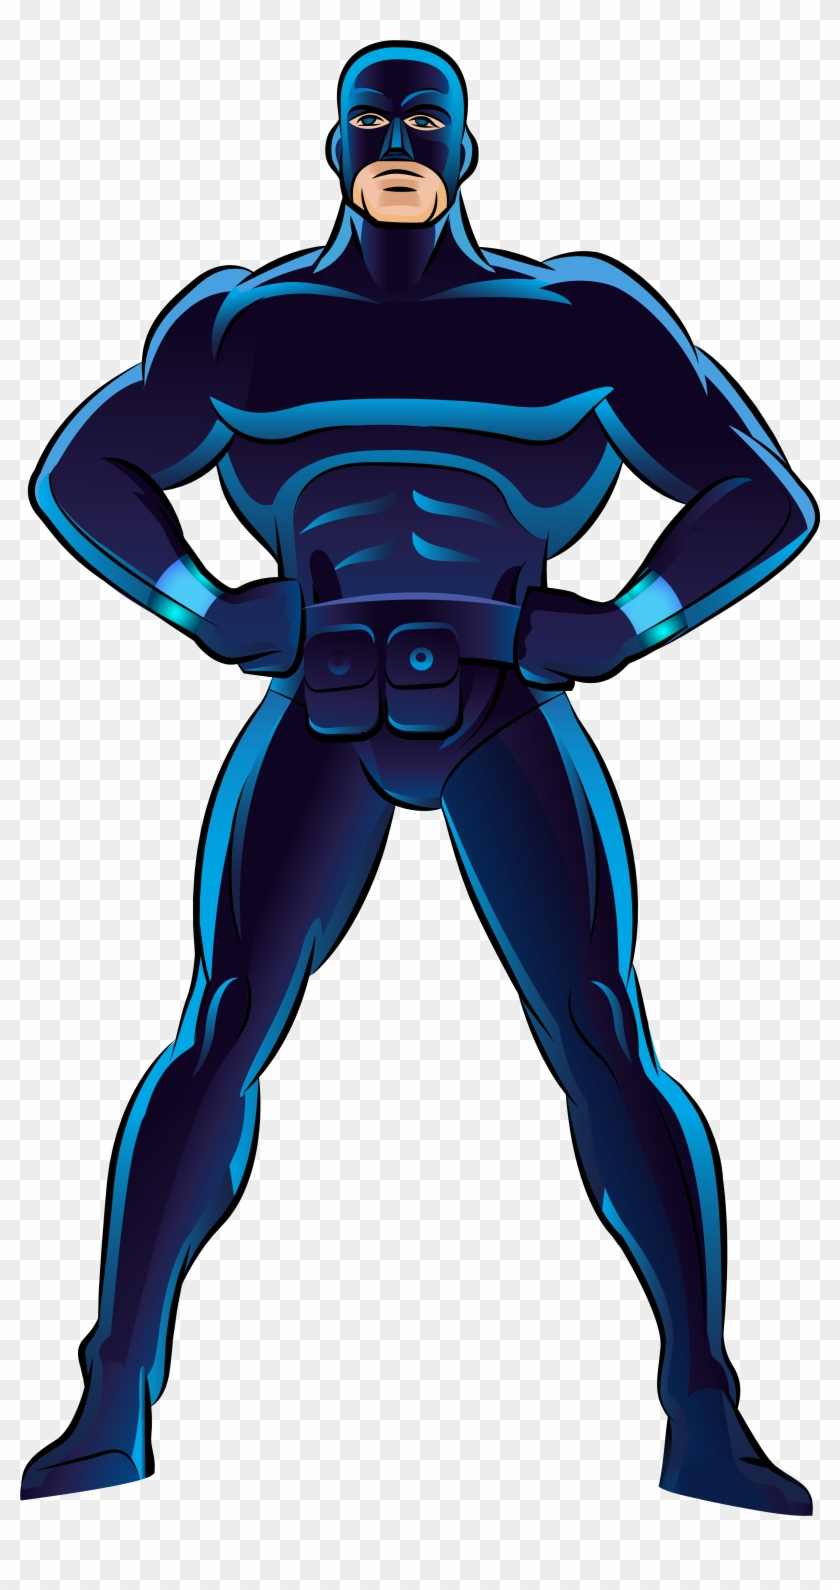 Blue Superhero Png Clip Art - Power Rangers Spd Costume #3296